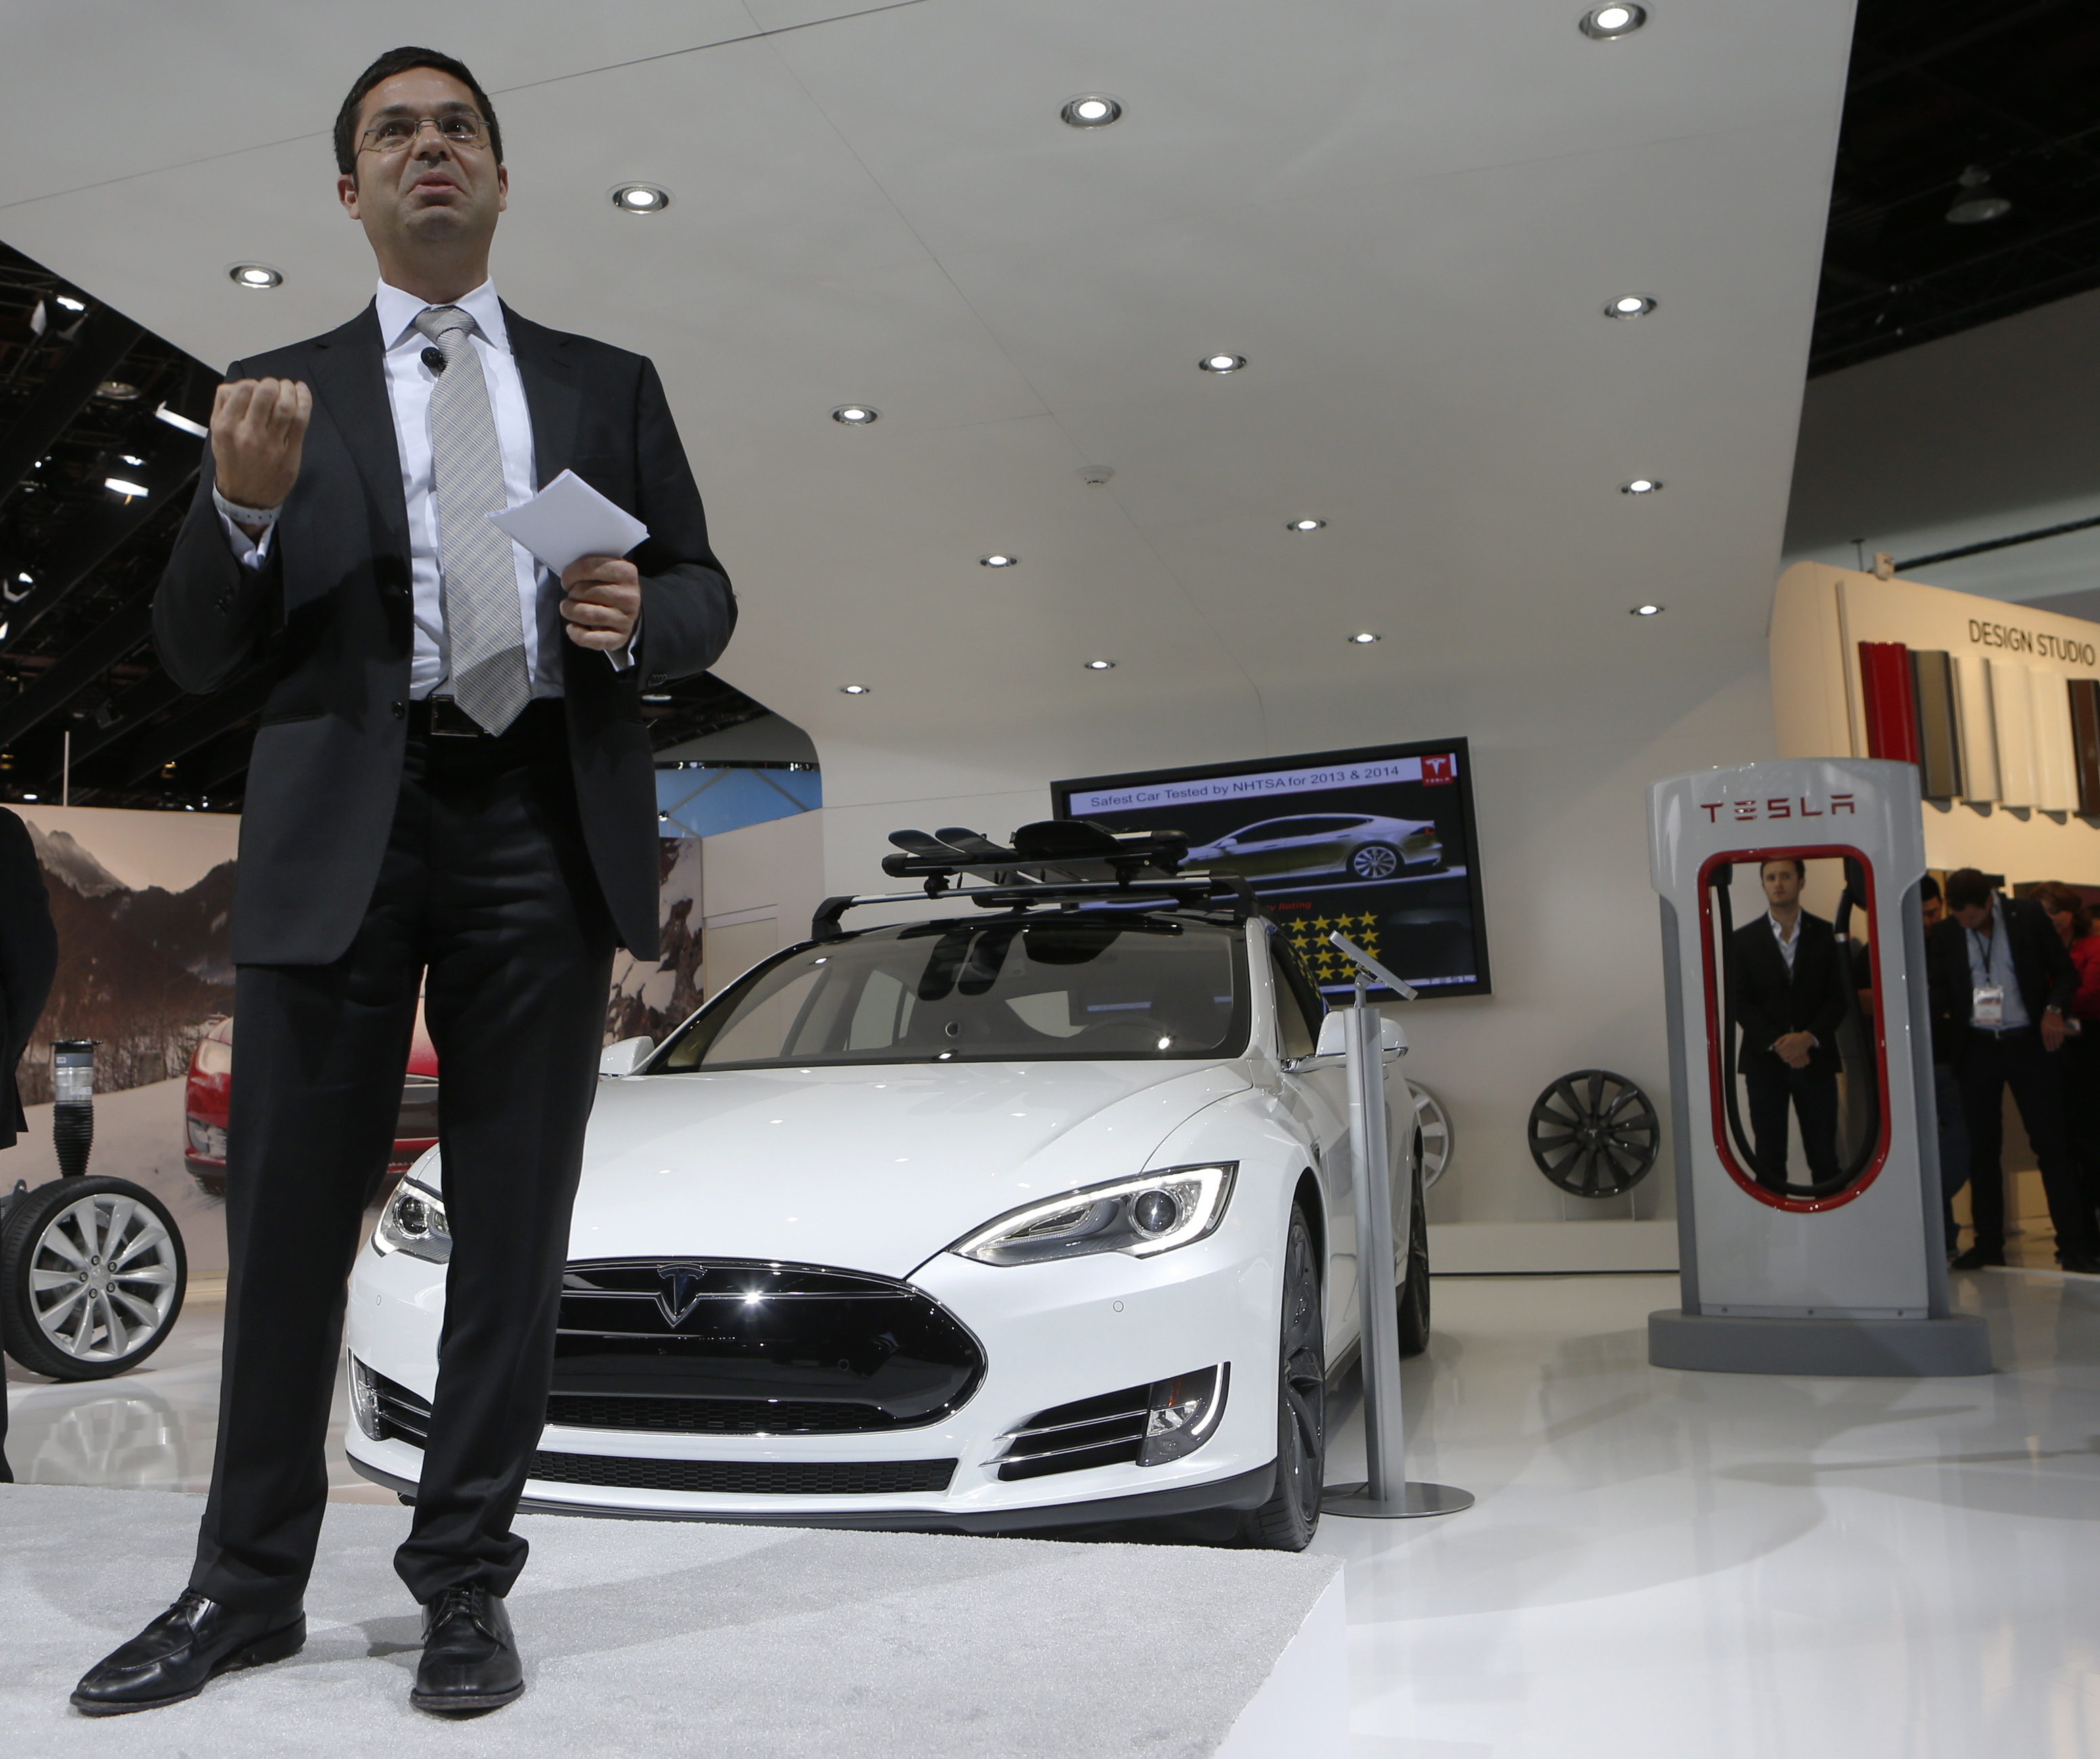 Jerome Guillen, Vice President of Tesla Sales and Service, speaks in front of a Tesla S electric car and a charging station (R) during the press preview day of the North American International Auto Show in Detroit, Michigan January 14, 2014. REUTERS/Rebecca Cook